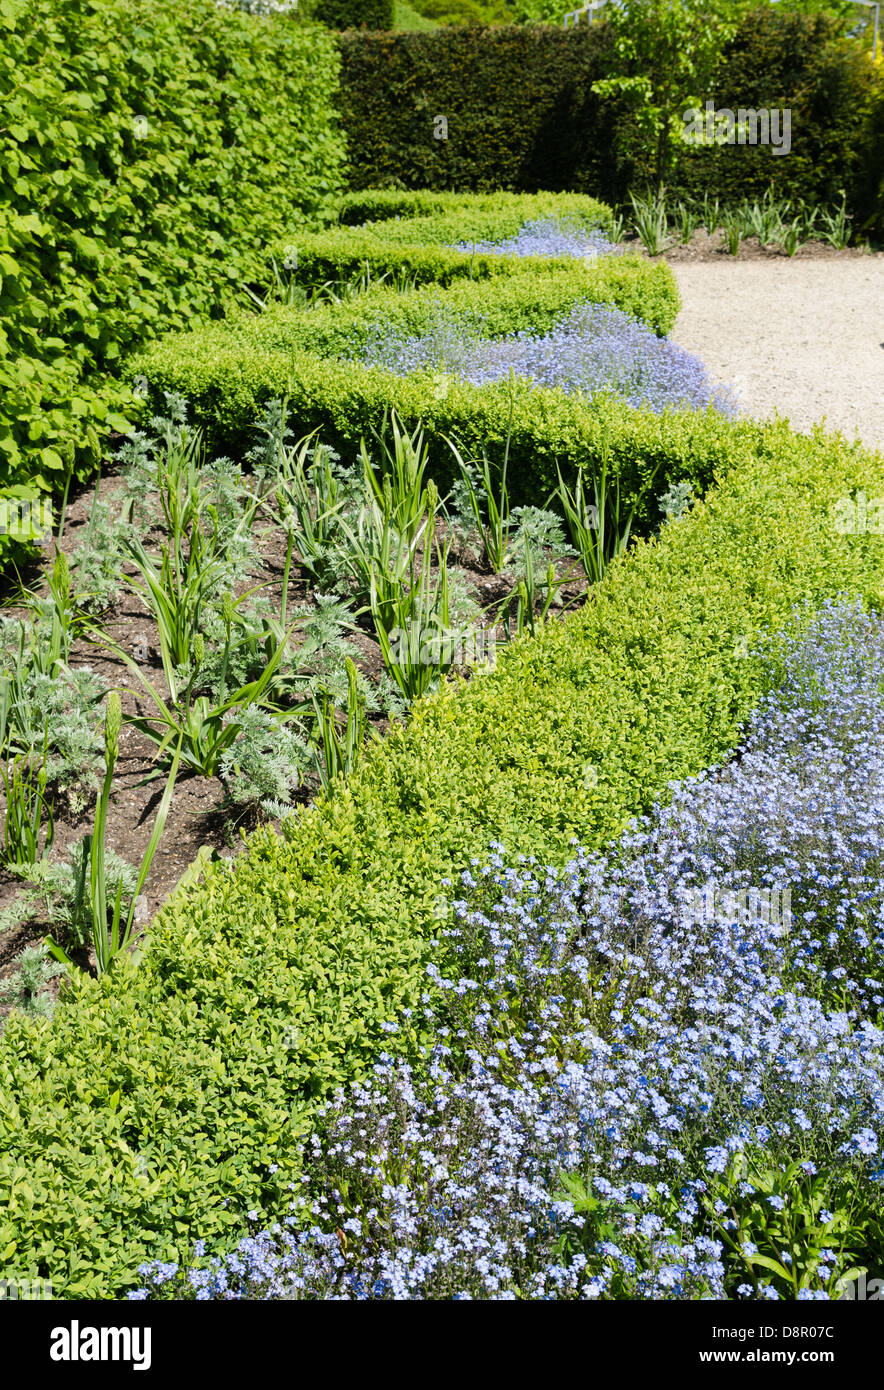 Box hedging in an English garden - Stock Image